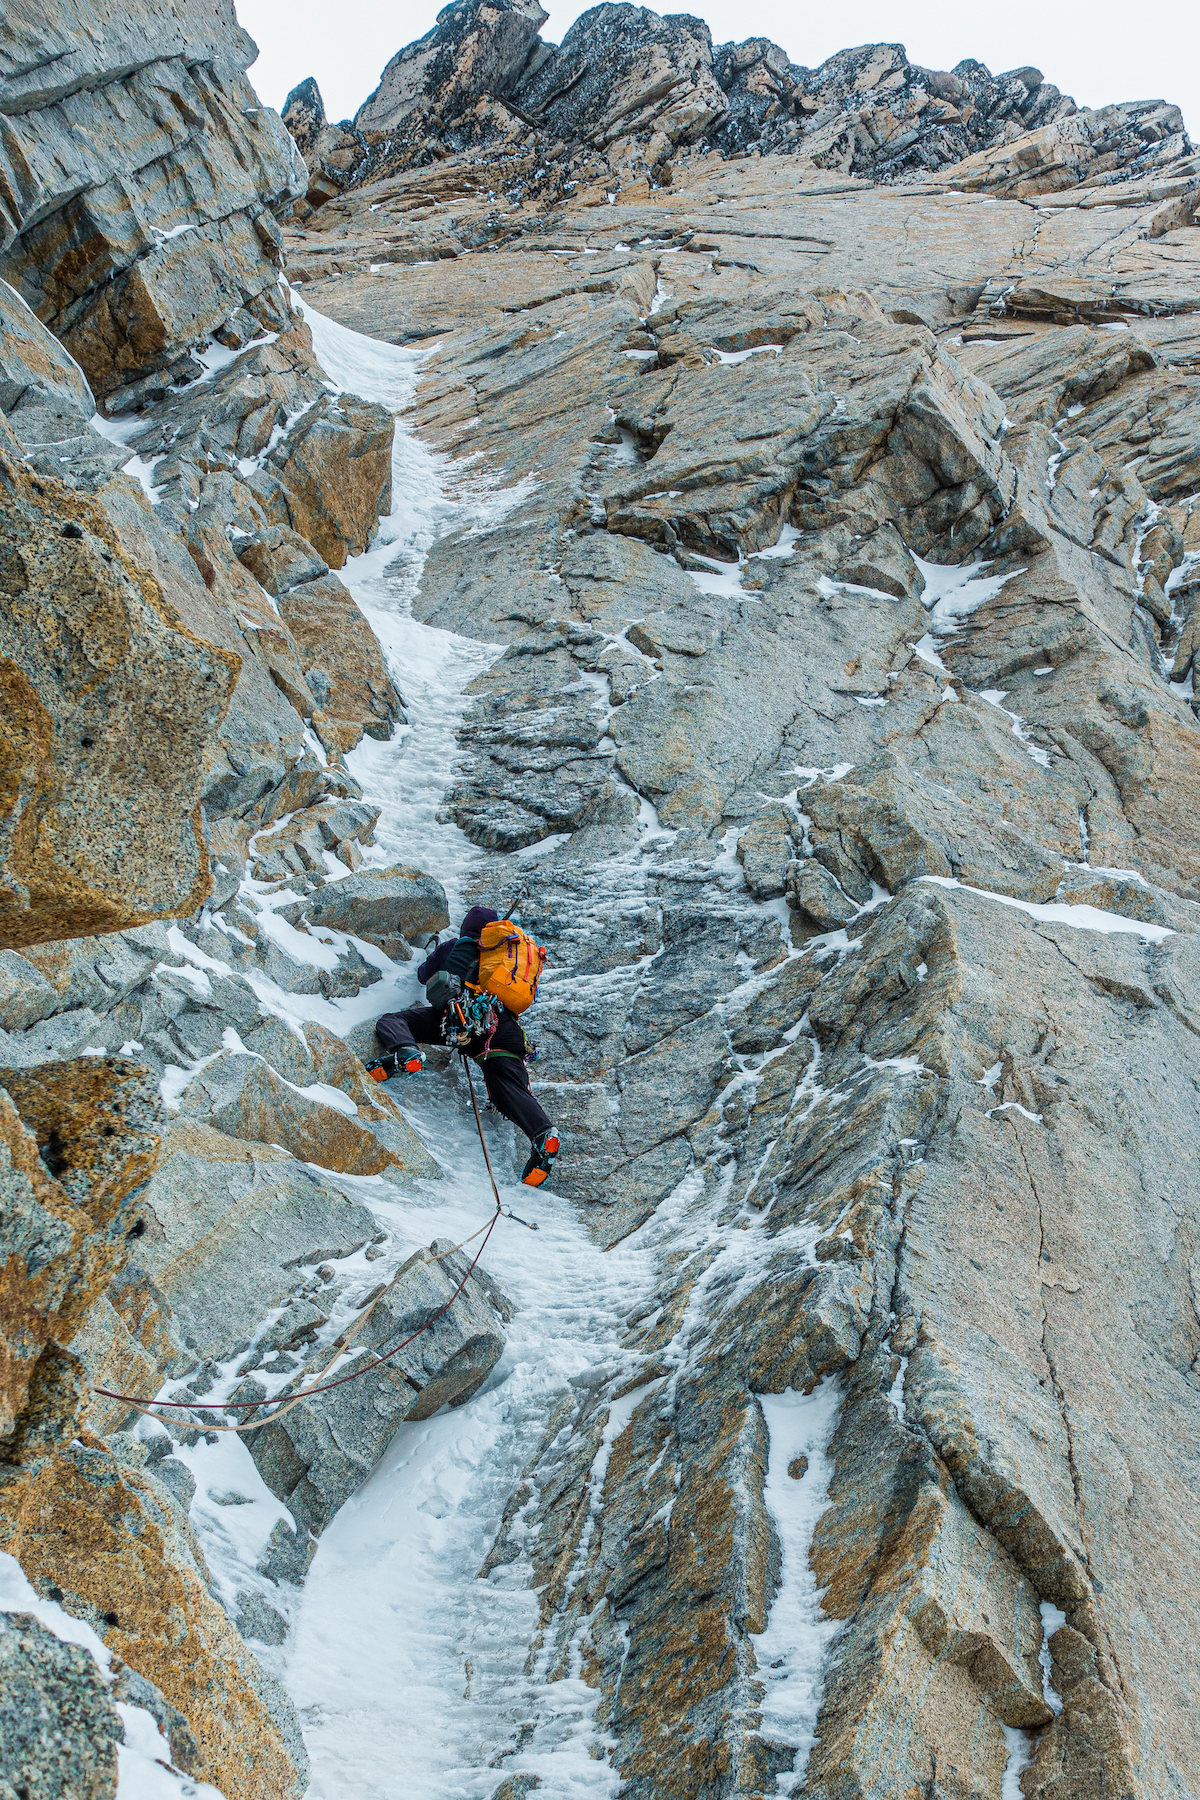 As an all-around ice tool, the Petzl Quarks are just as comfy and secure on steep and technical terrain as they are on easier slopes. McCrea on Super Domo. [Photo] Jon Griffin